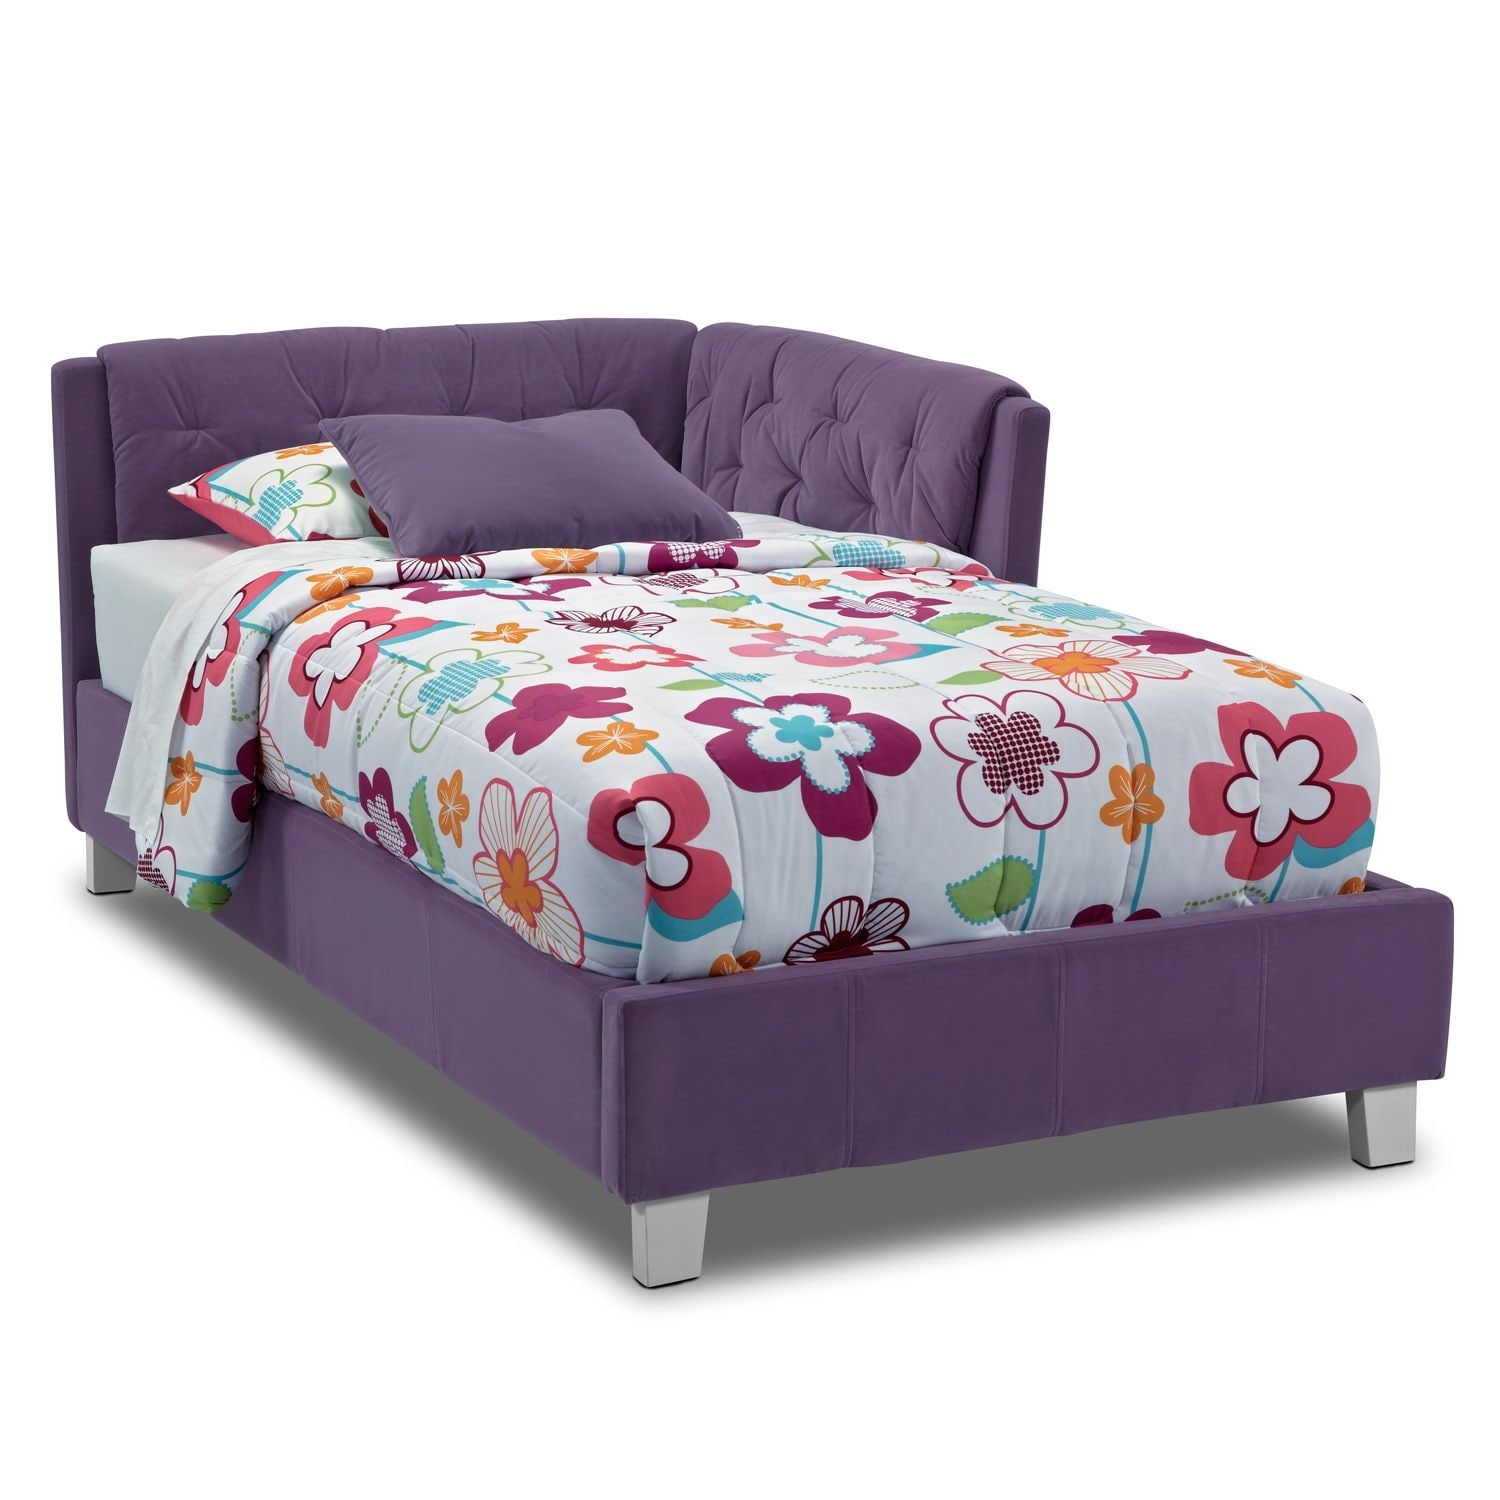 Jordan Twin Corner Bed - Purple